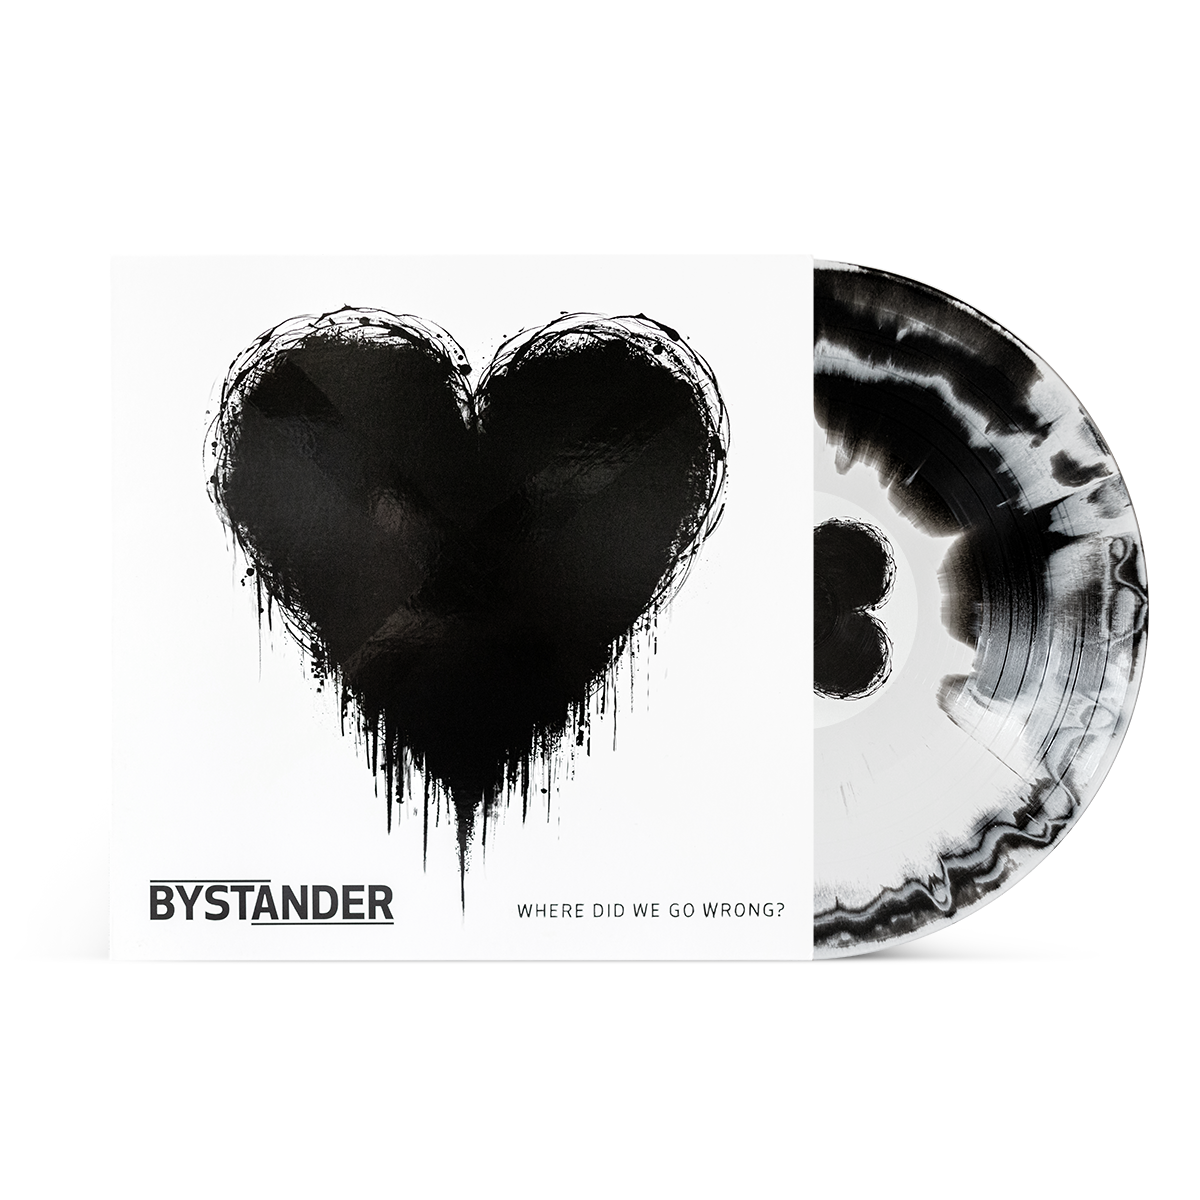 bystander-blackwhite-mix-1200x.png